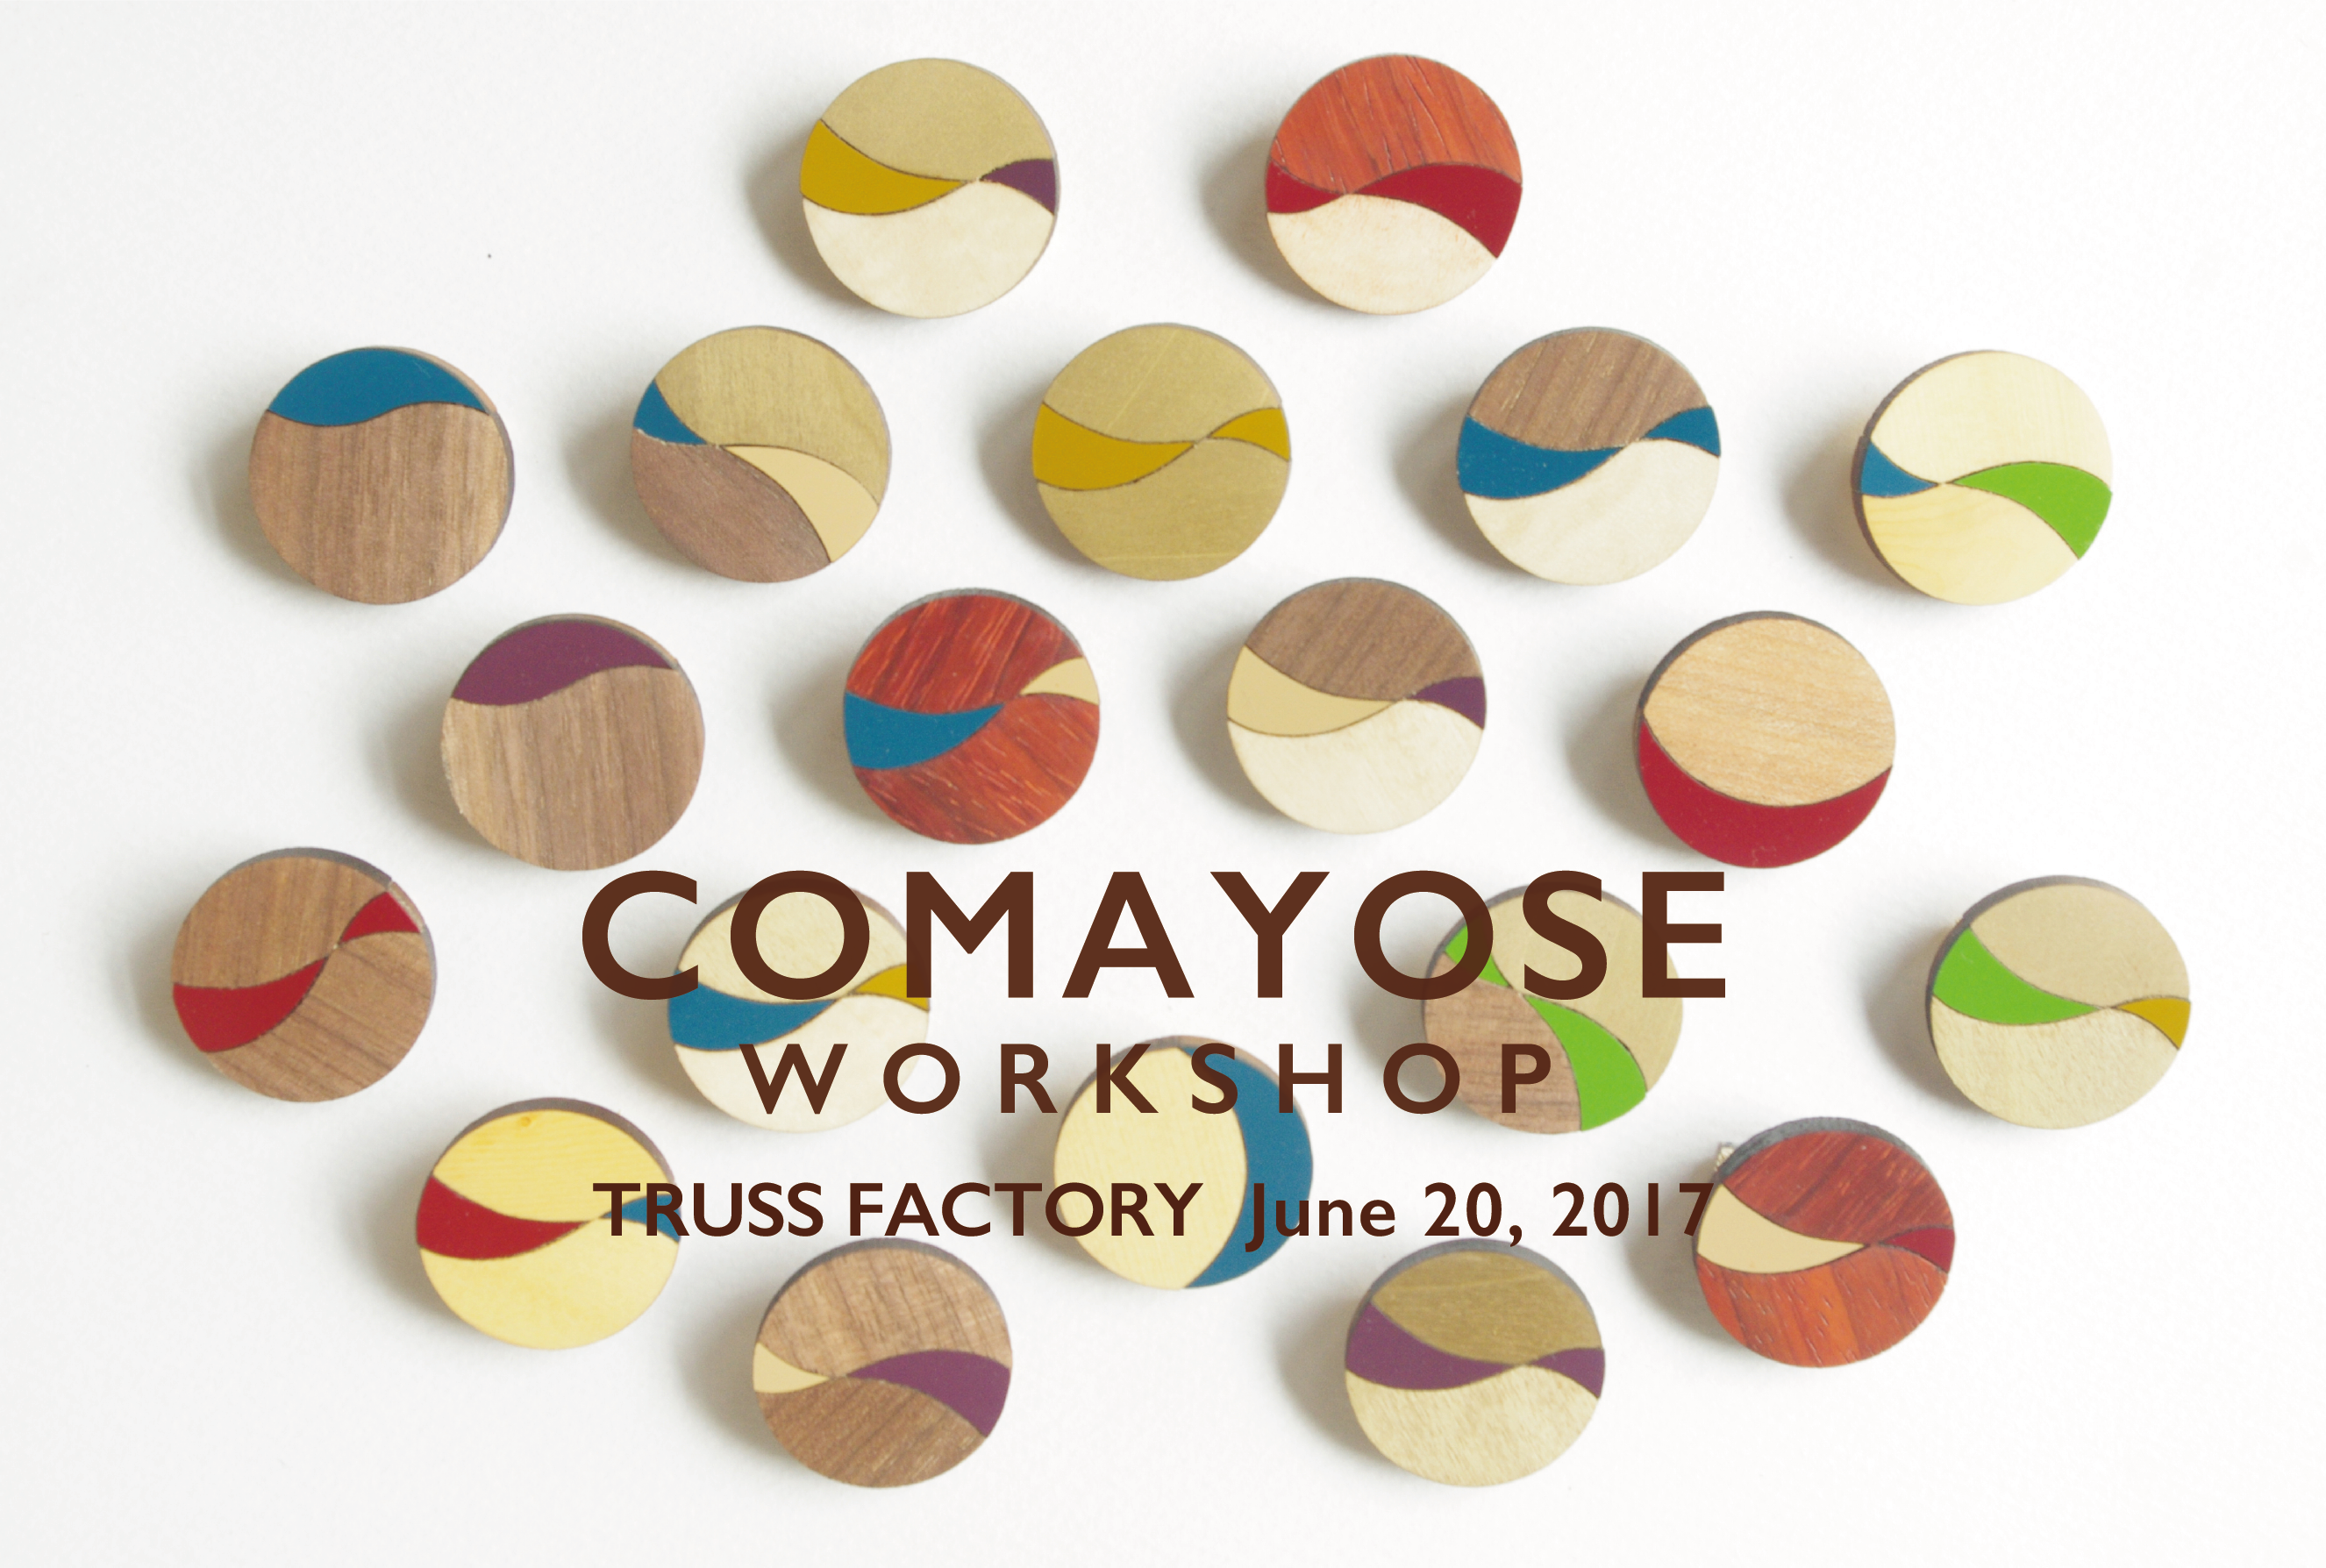 6月20日 COMAYOSE WORKSHOP